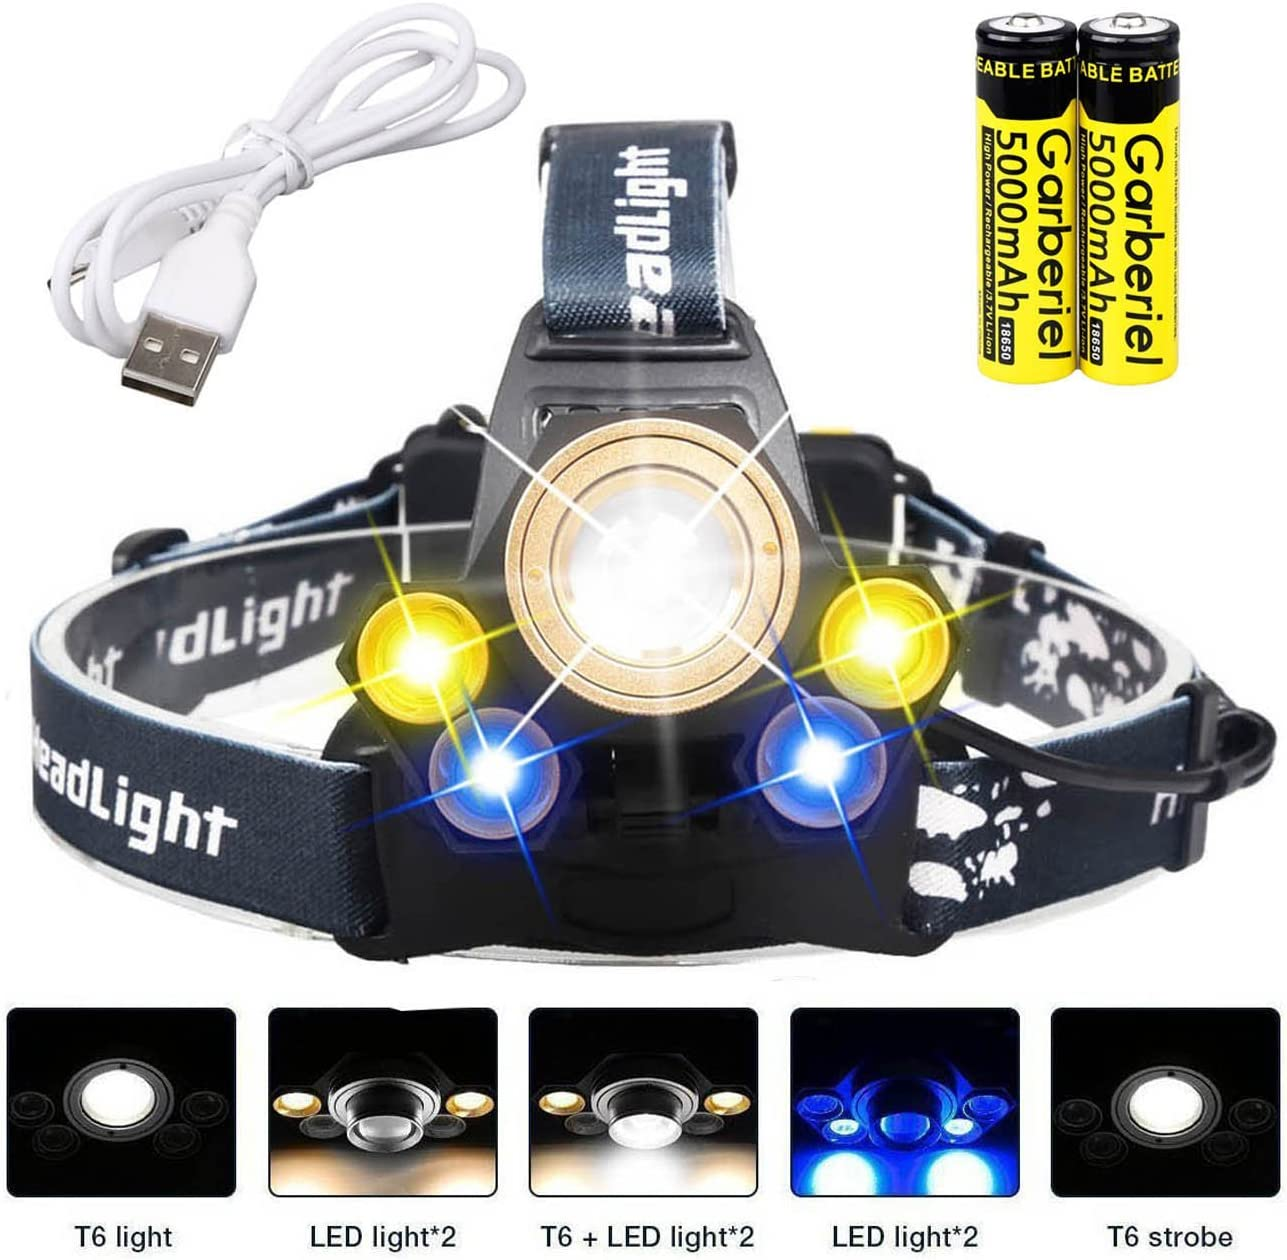 Batteries included Garberiel 5 Modes USB Rechargeable Waterproof Headlamp 5000 Lumen Super Bright Zoomable Flashlight Camping Riding Hiking LED Headlight Fishing